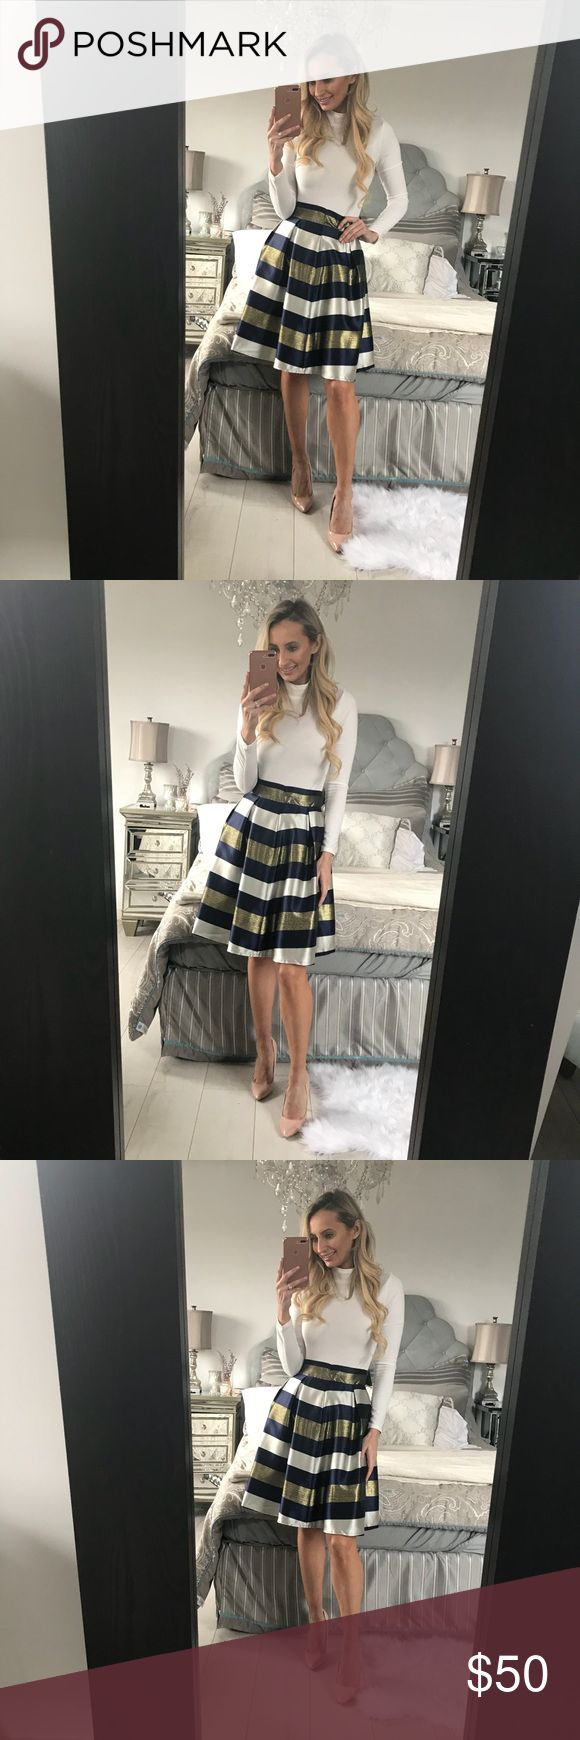 High Waist Pleated Striped Skirt High Waist Pleated Striped Skirt  Material: Cotton Size.   Waist.          Hip.             Length XS.     22-23.6.     29-31.4.      35.8 S.        23-24.8.     29-32.2.     37 M.       24-26.7.      31-34.2.     38.1 L.        25-27.5.      32-37.4.     38.5 XL.      25-28.3.     32-38.5.    40.1 Little Pearls of Life Skirts Midi